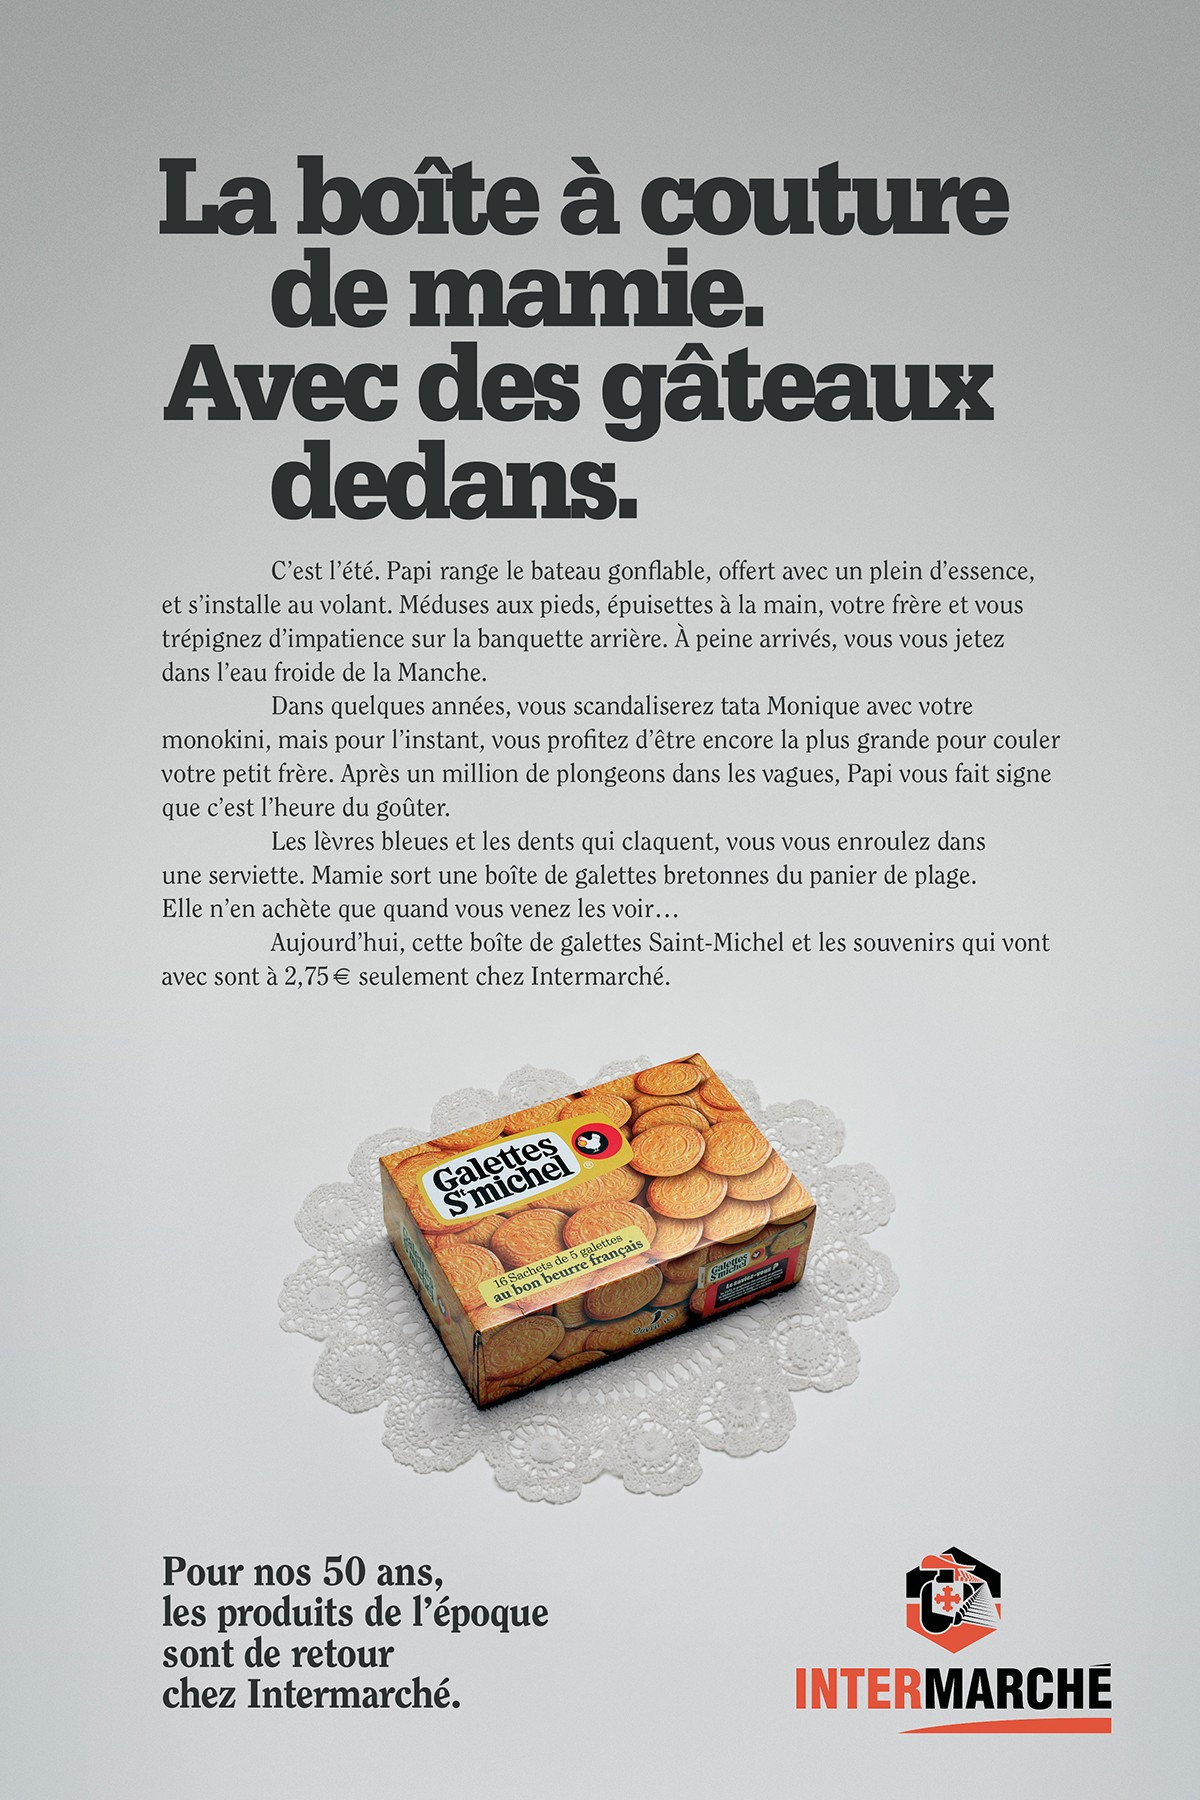 intermarche-50-ans-tf1-evelyne-leclercq-agence-romance-galettes-saint-michel-packaging-1960-1970